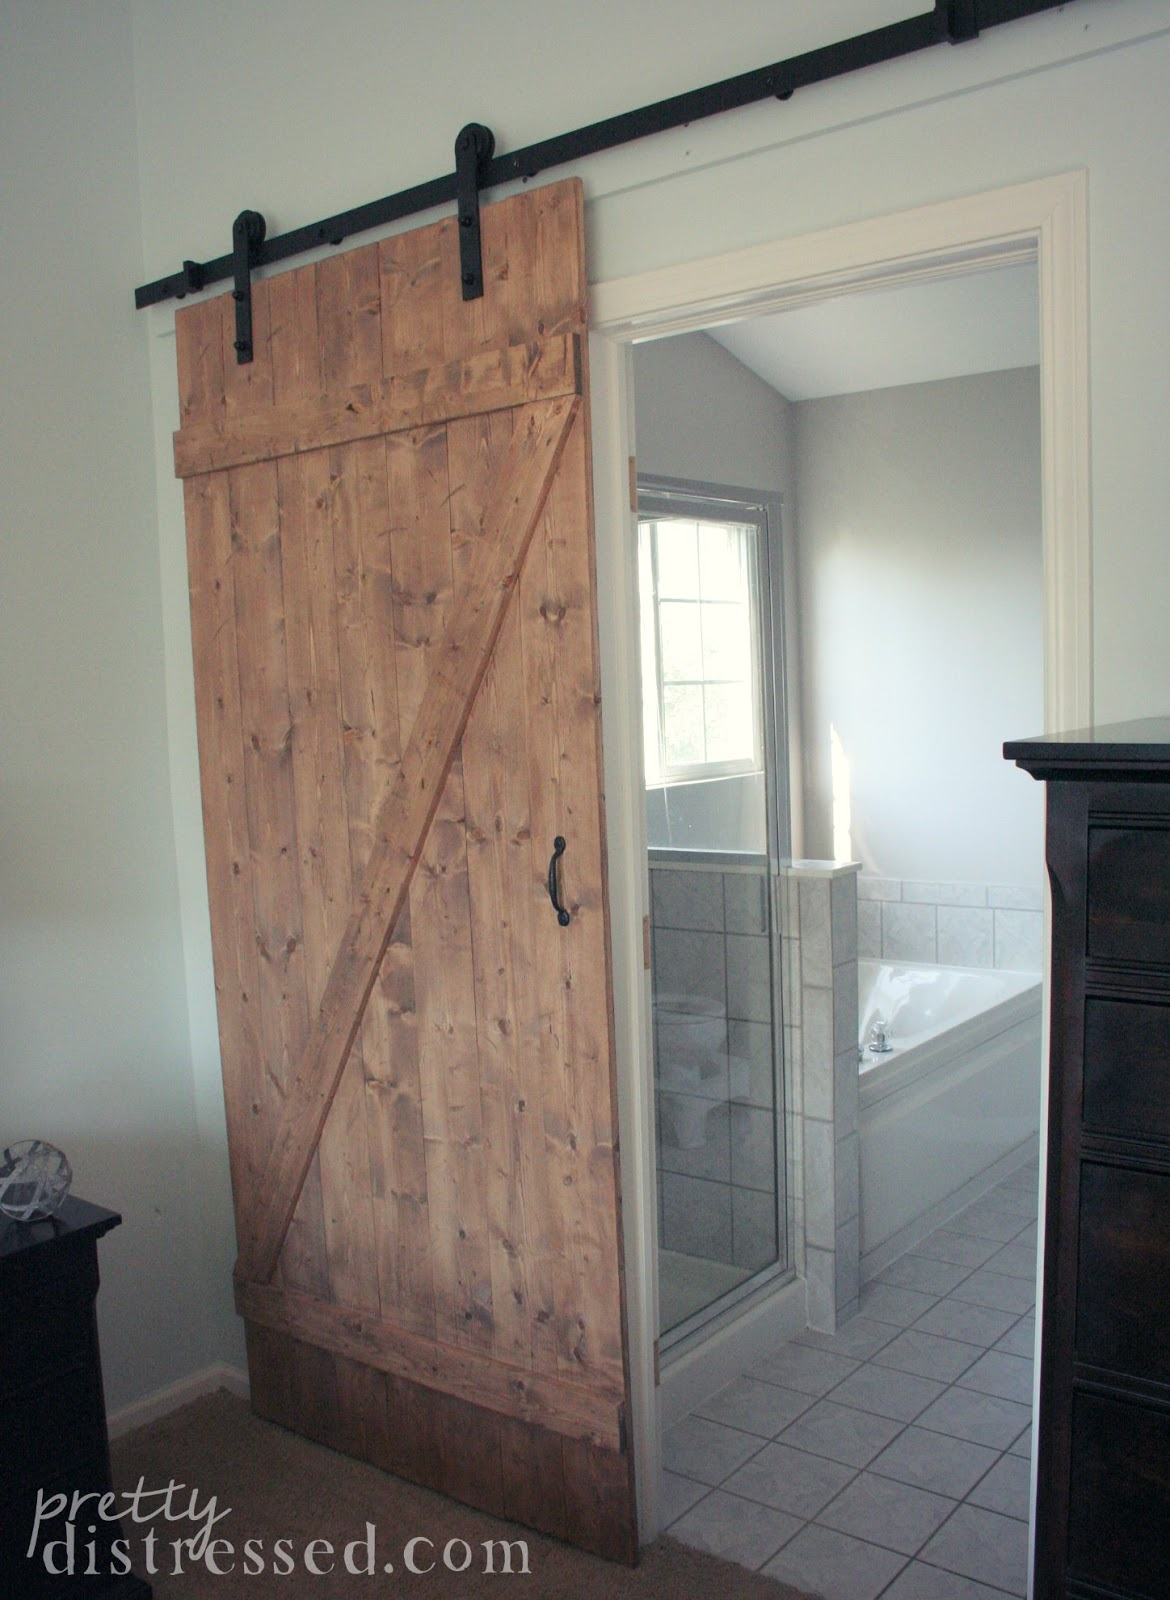 Sliding Barn Door Designs: Pretty Distressed: DIY Distressed Sliding Barn Door